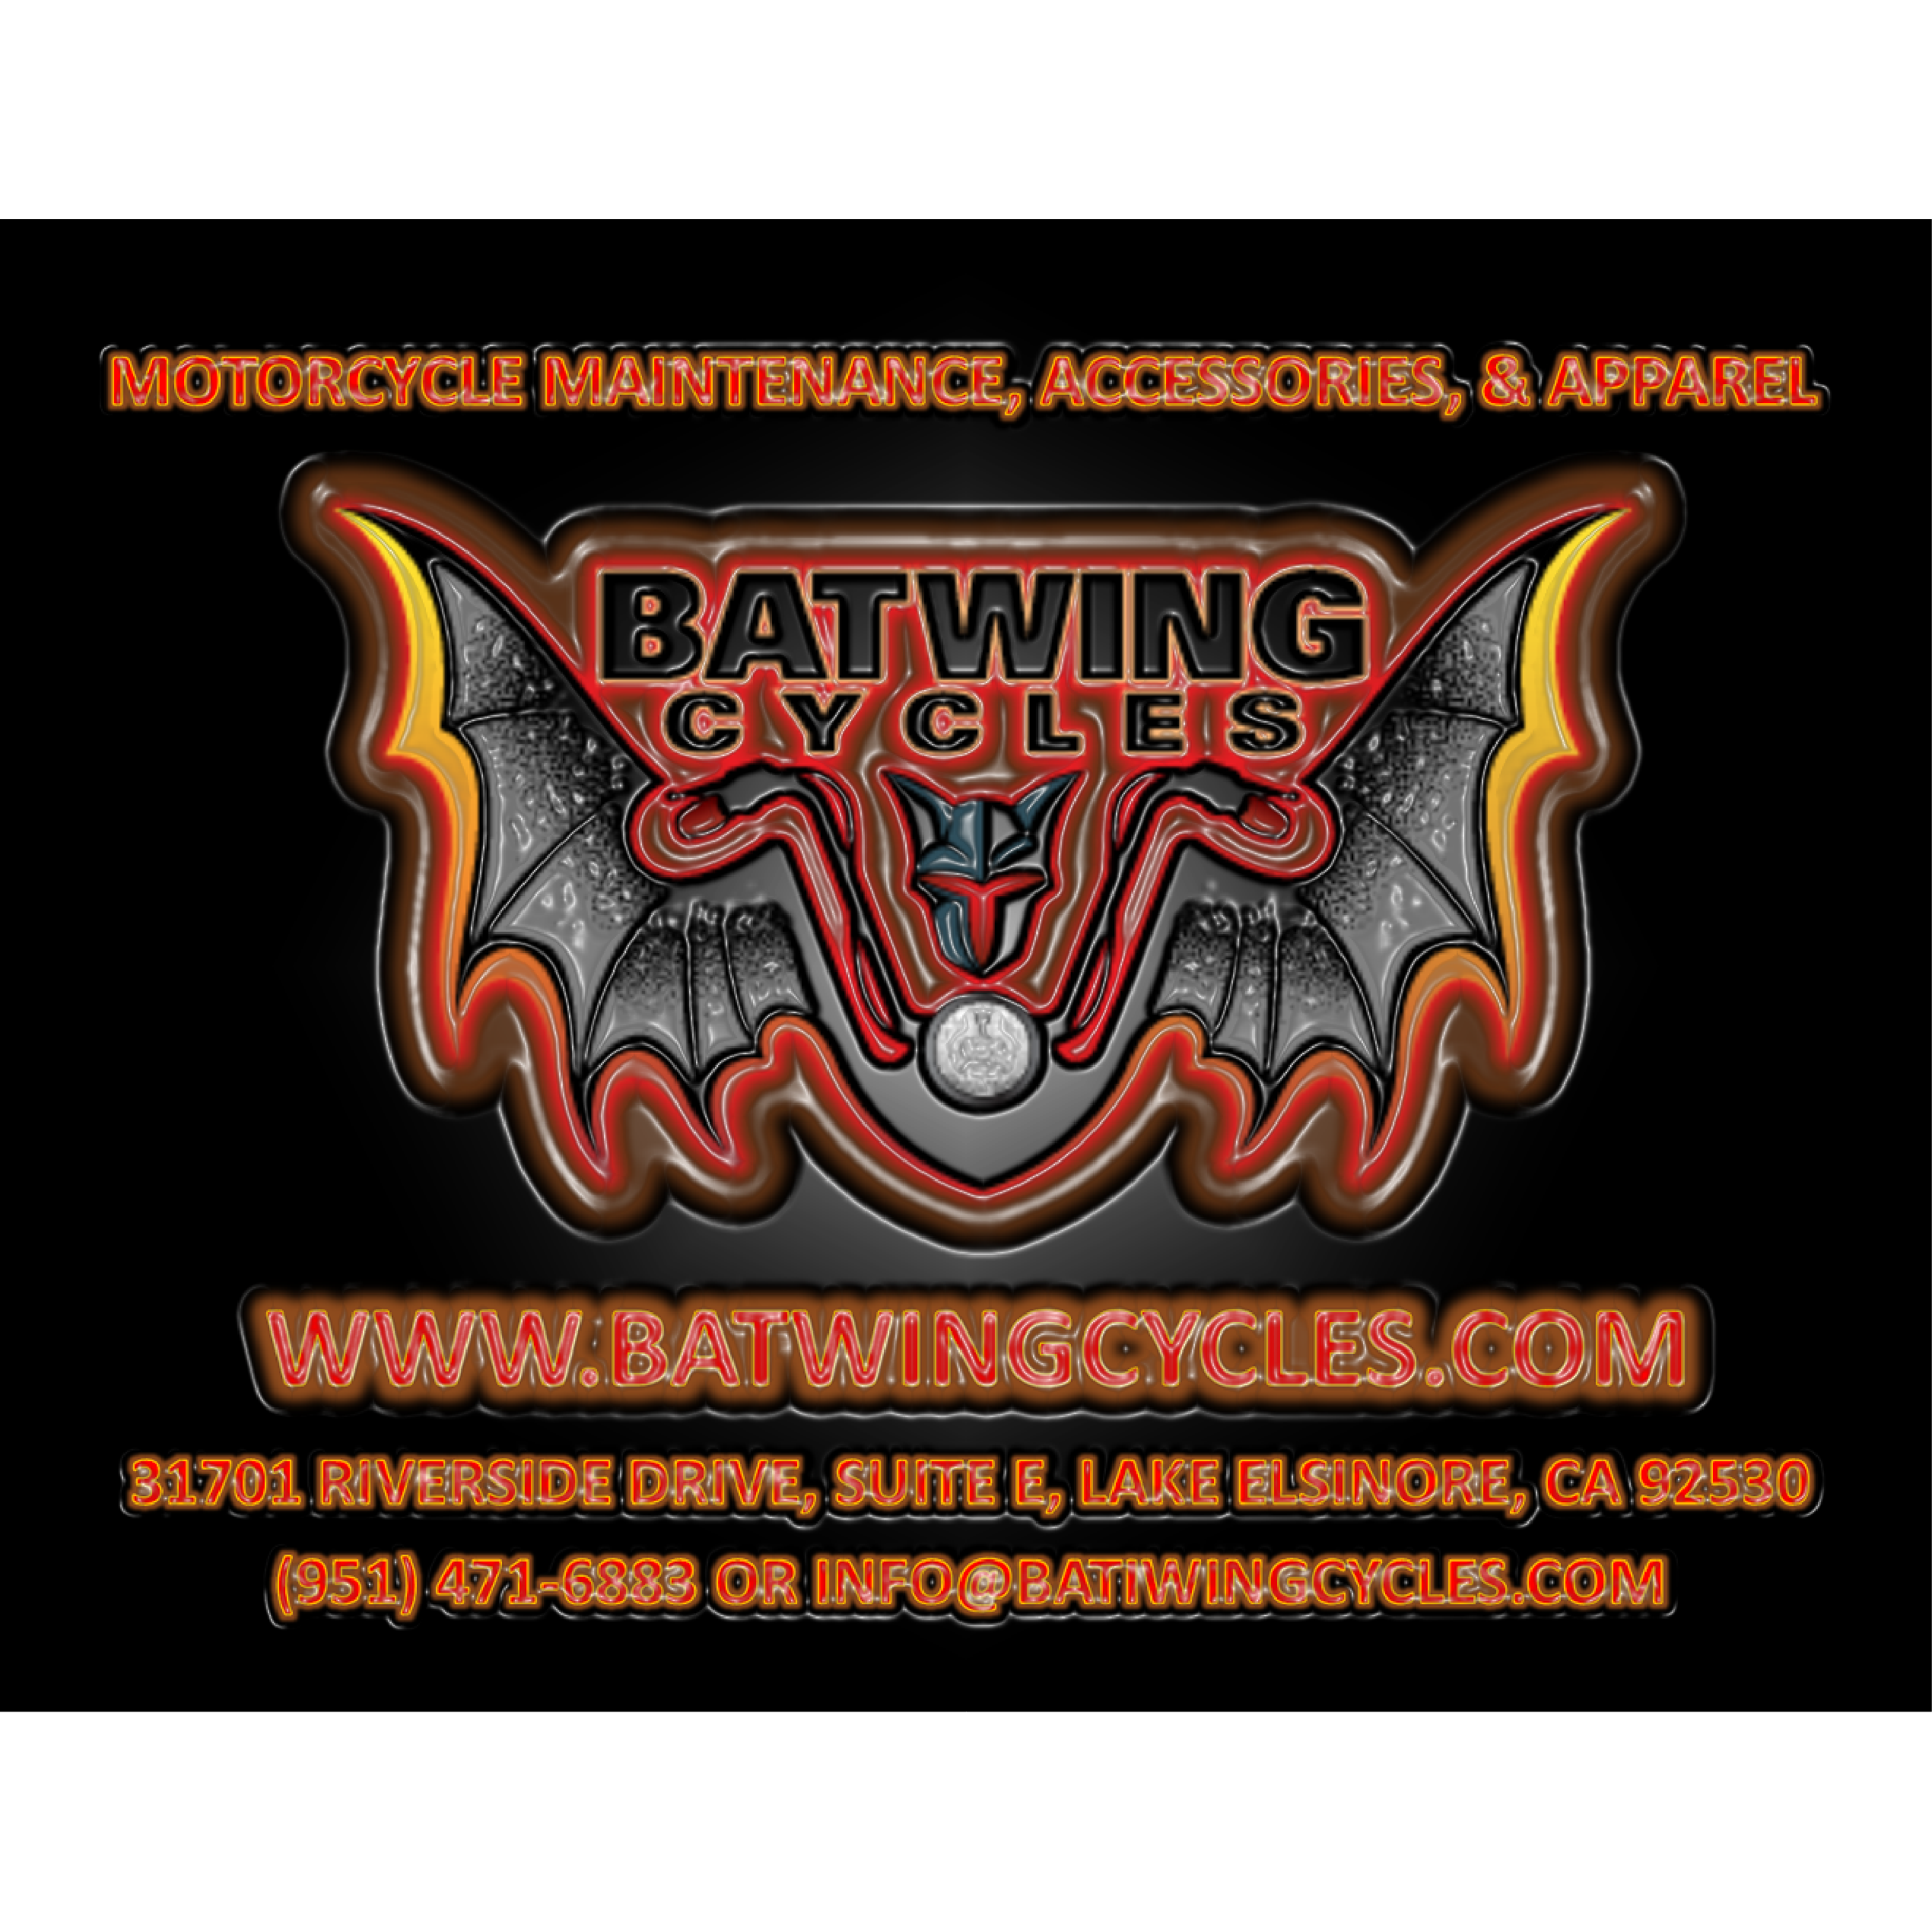 Batwing Cycles